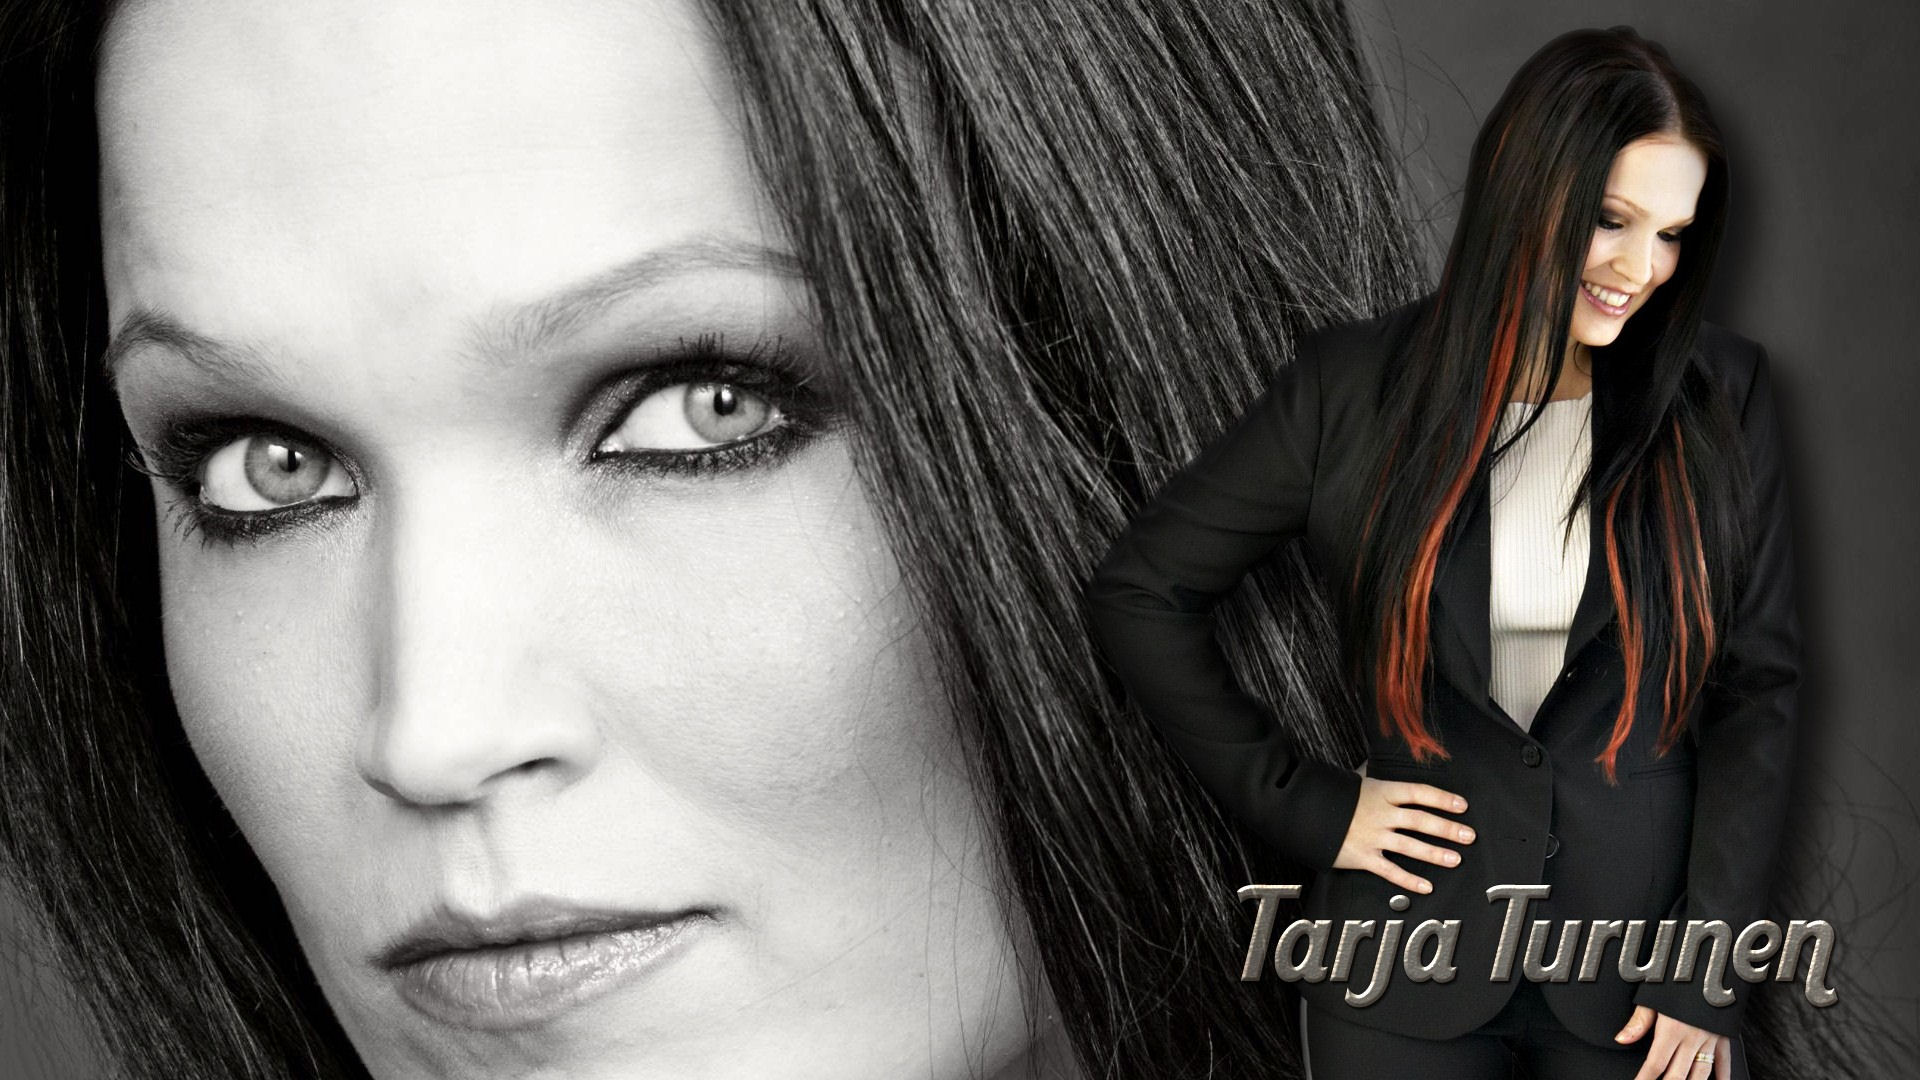 tarja turunen wallpaper - photo #26